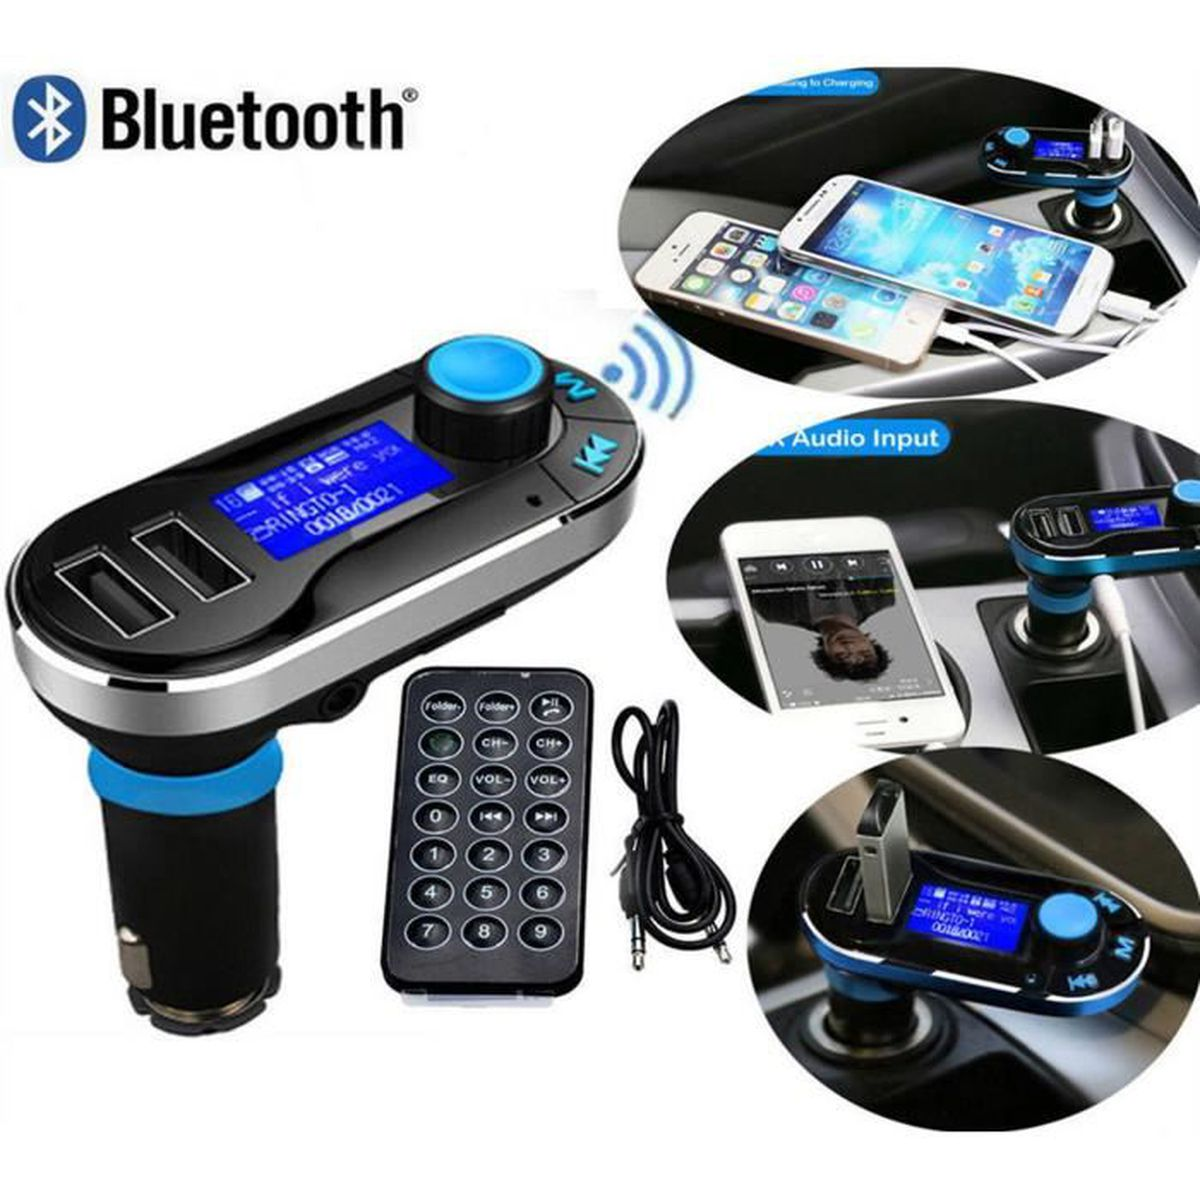 double voiture usb lecteur mp3 bluetooth voiture bluetooth haut parleur bluetooth voiture. Black Bedroom Furniture Sets. Home Design Ideas